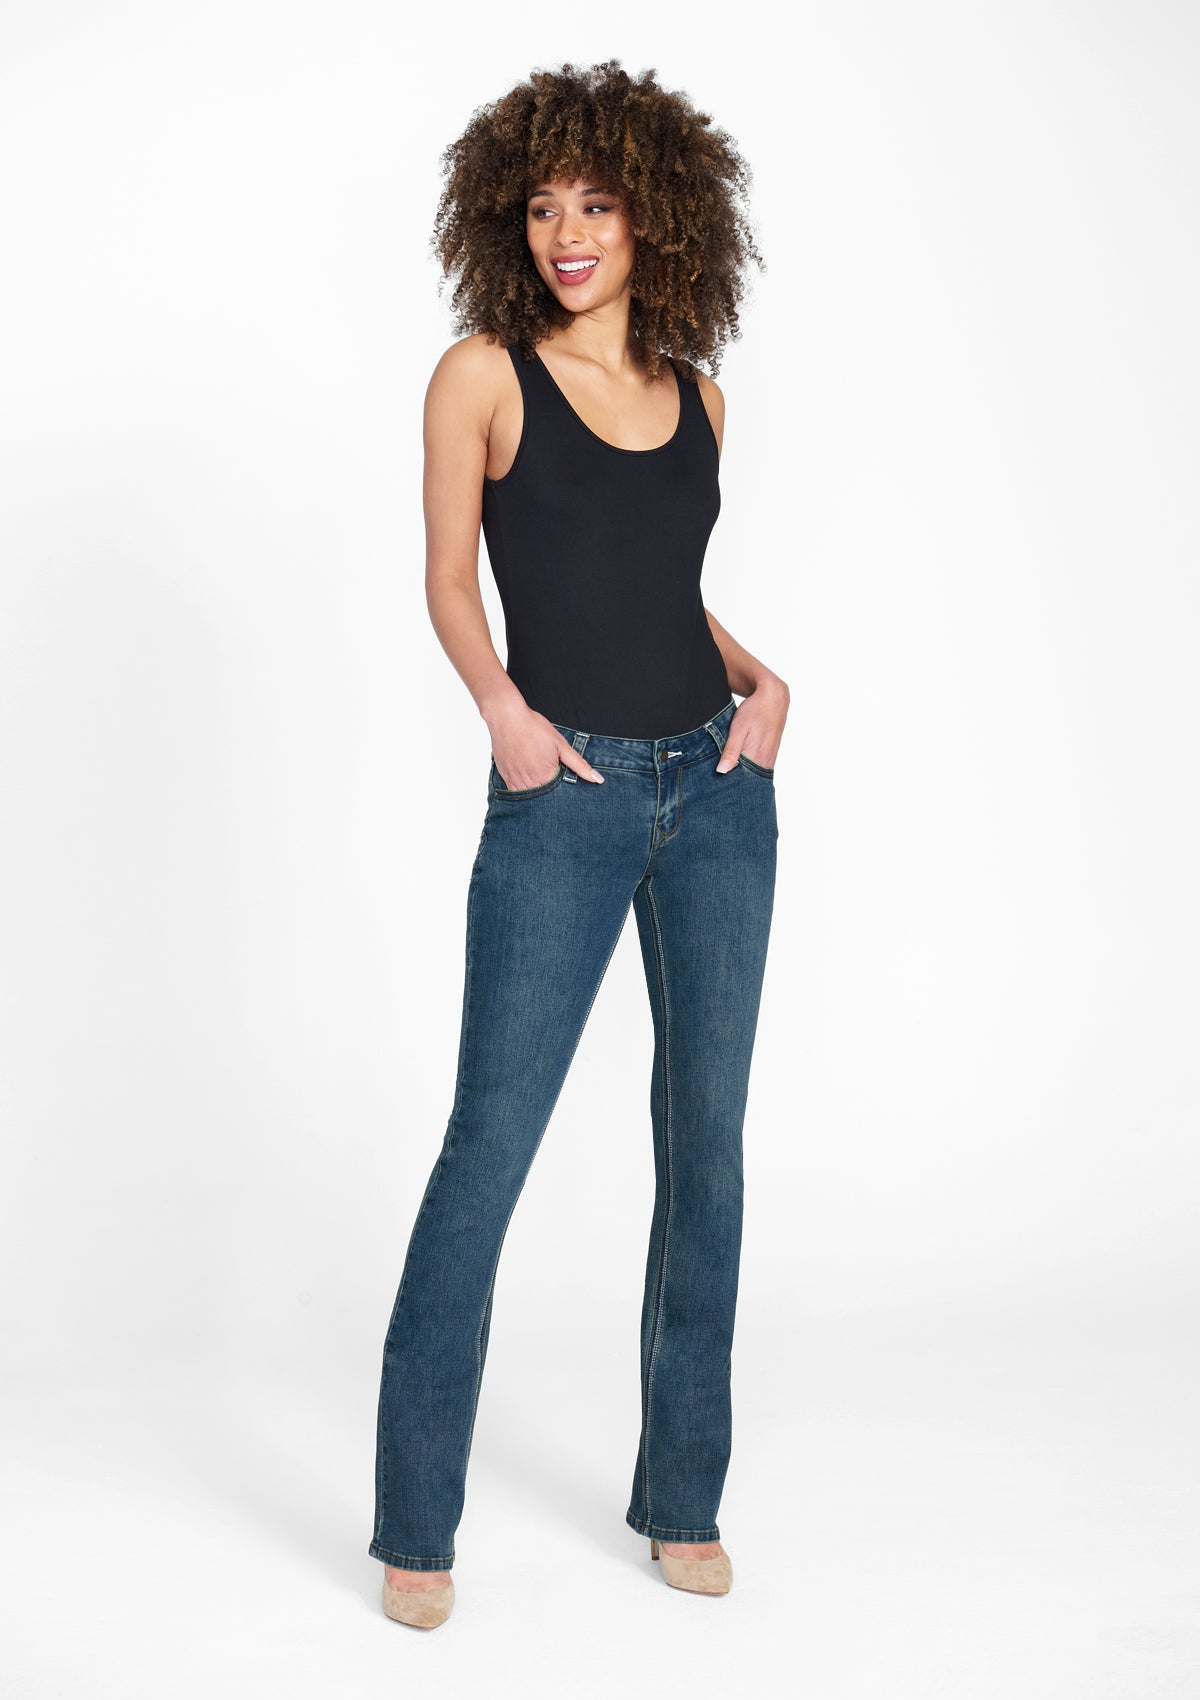 Alloy Apparel Tall Avery Bootcut Plus Size Jeans for Women in Dark Vintage Wash Size 12 length 35 | Cotton